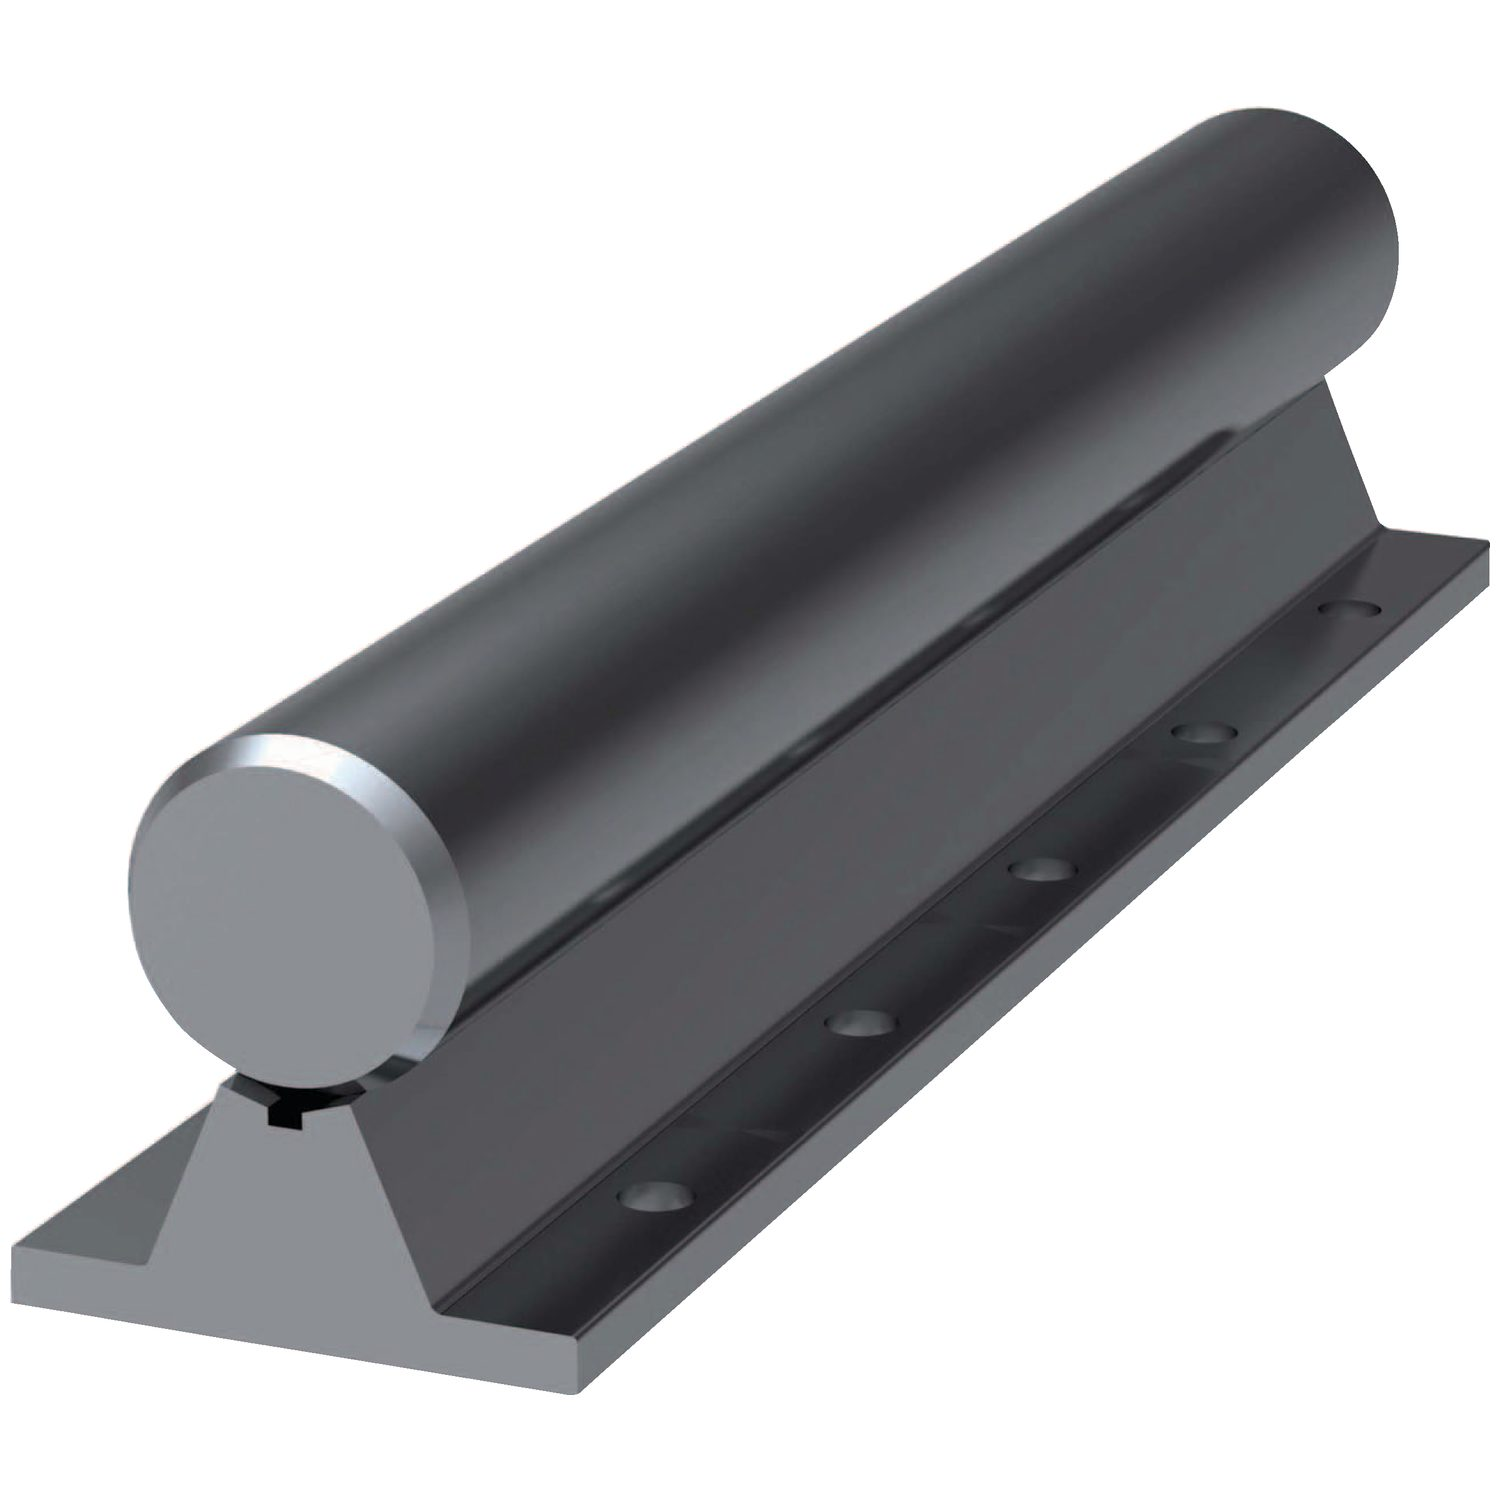 16Ø Shaft Support Rails Shaft support rail for 16mm shaft. Complete with shaft, up to 3 metres long.